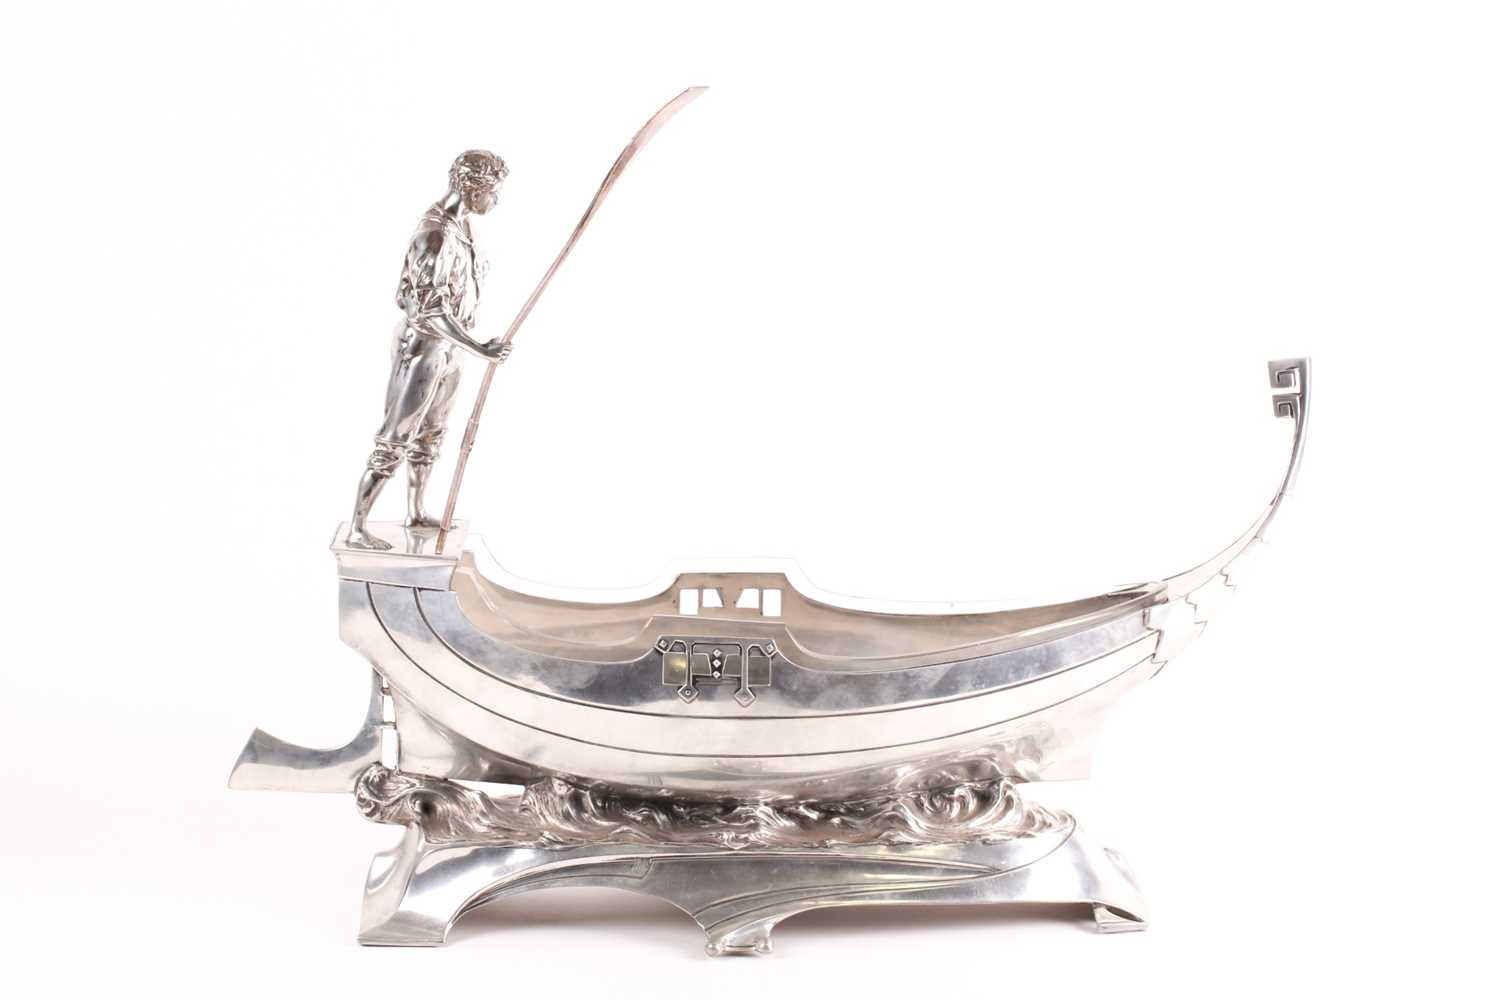 An Art Nouveau WMF centrepiece. In the form of a gondola with a gondolier to the rear holdng a pole; - Image 3 of 8